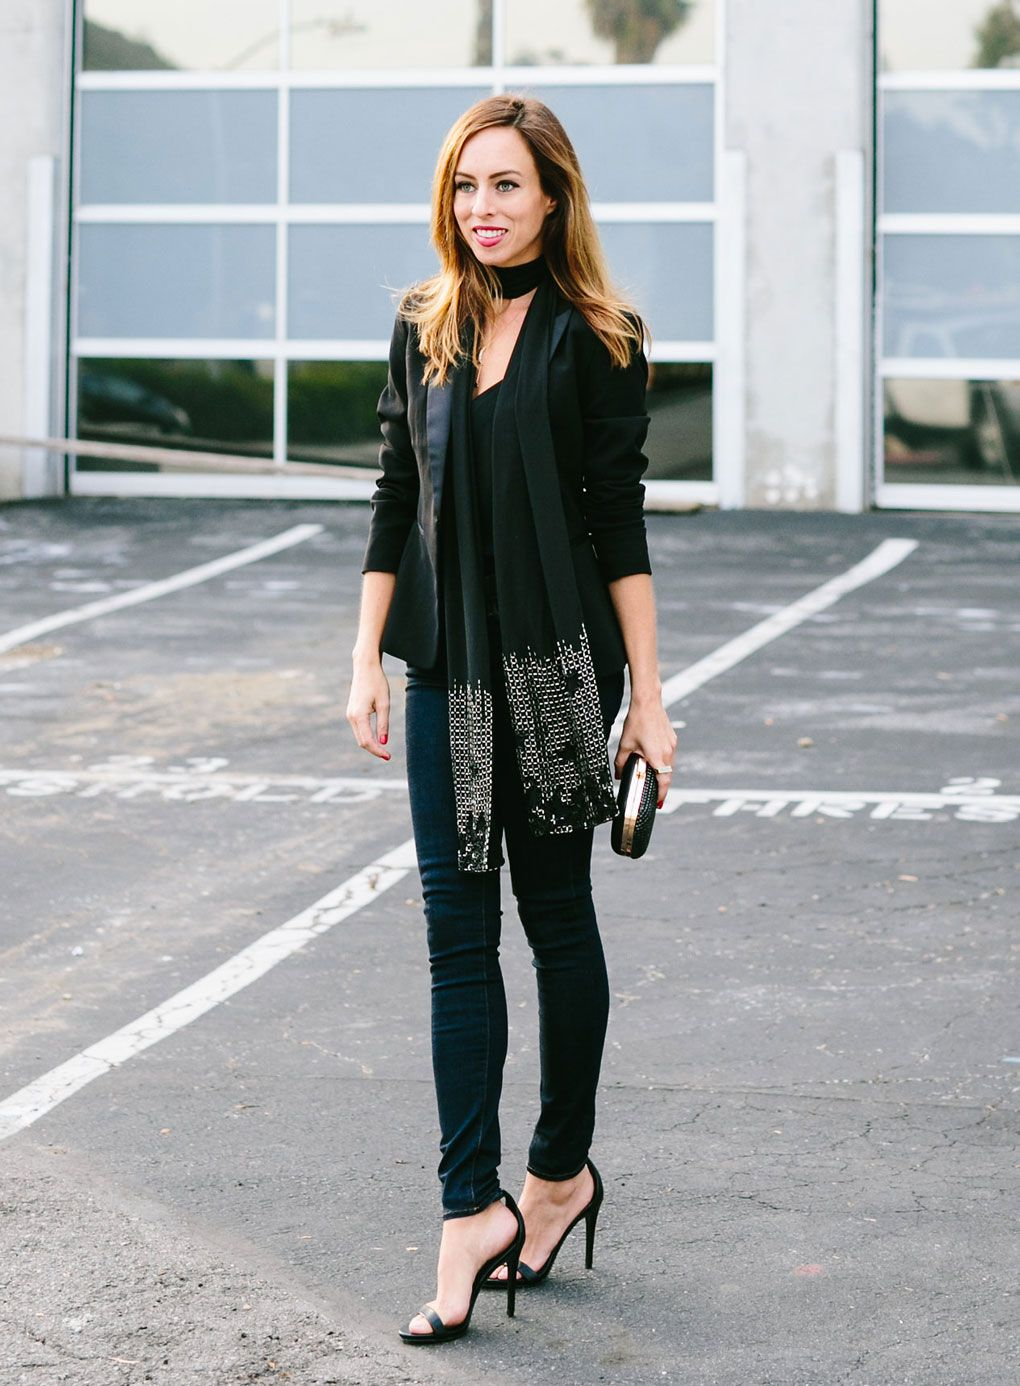 c7f0580cb03d Sydne Style - Los Angeles fashion blogger and People StyleWatch contributor  Sydne Summer shows how to wear the skinny scarf trend